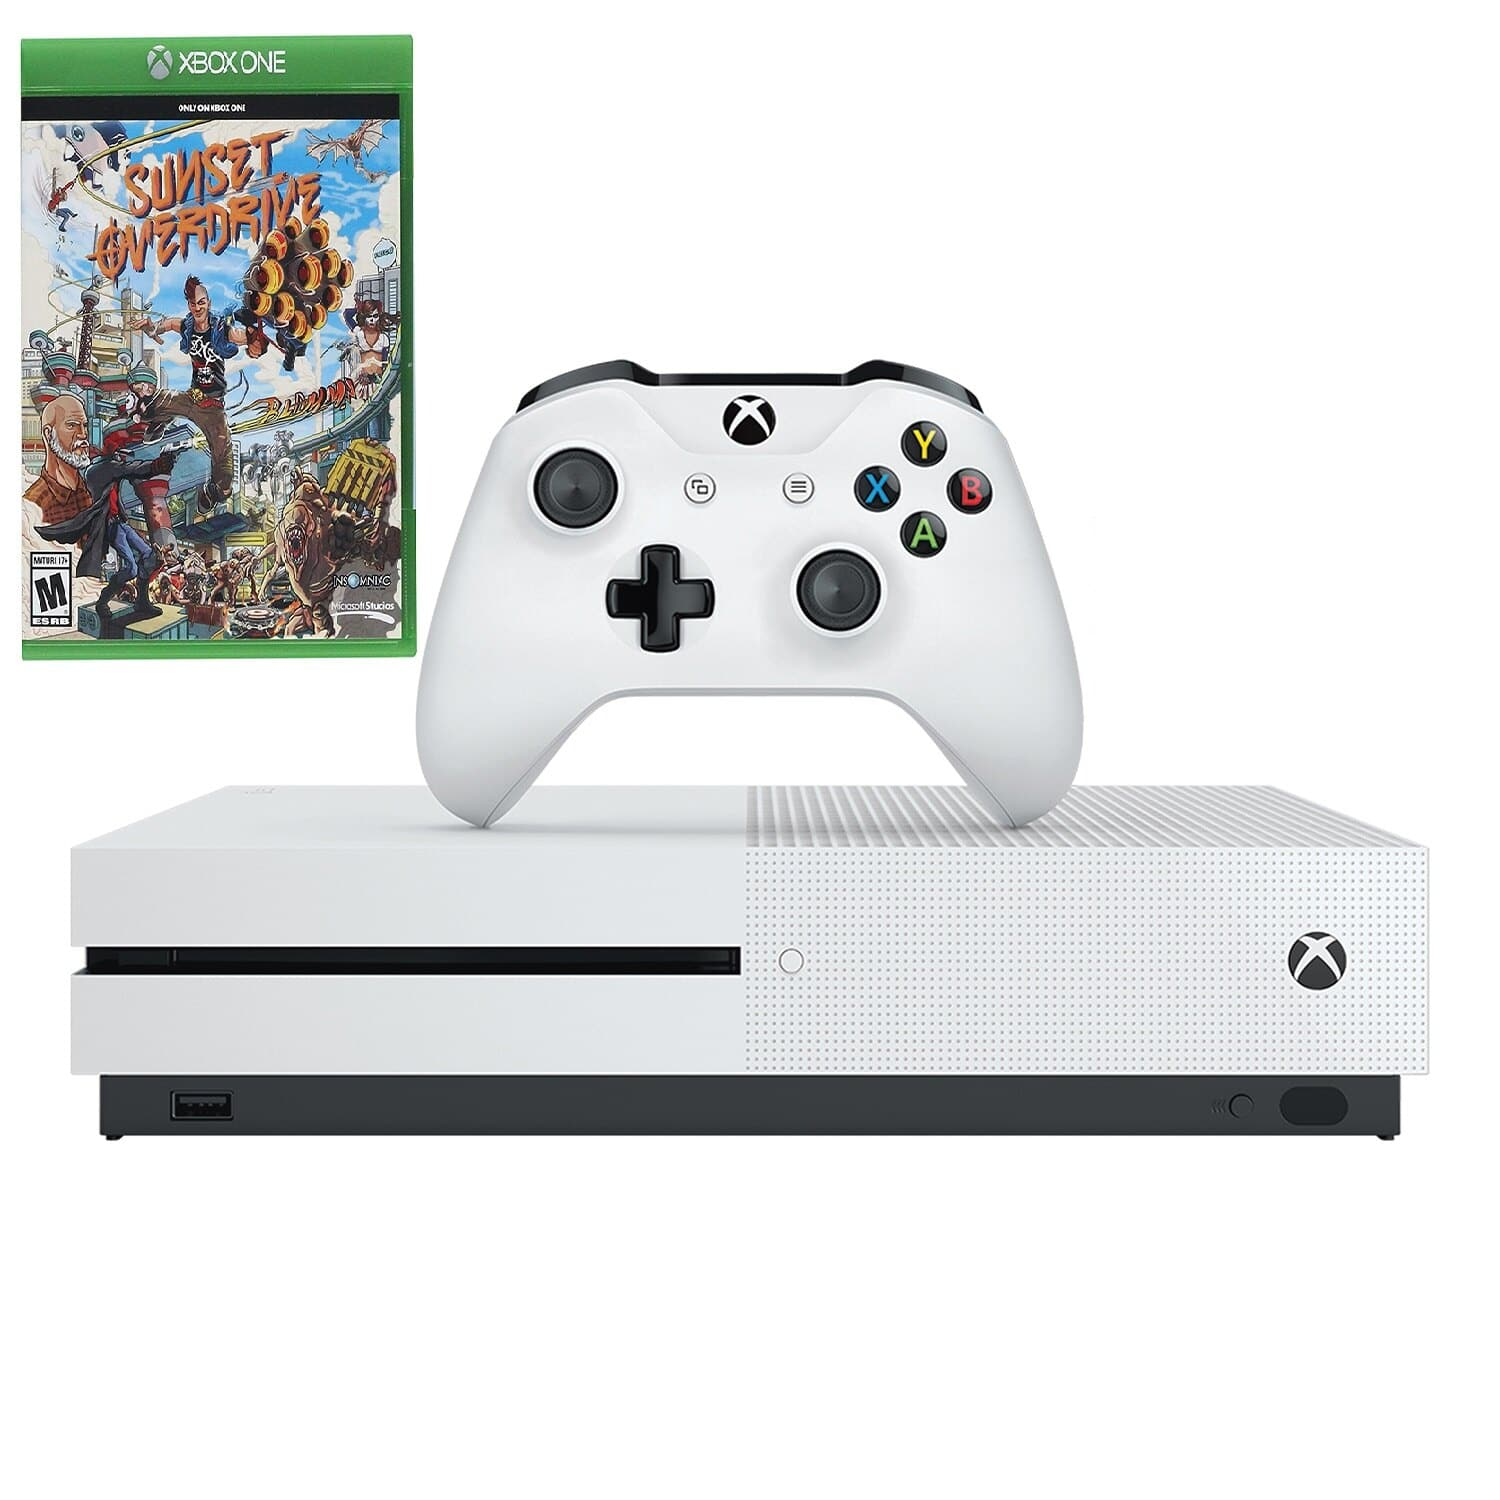 Microsoft Xbox One S 1TB Console + Sunset Overdrive Game - $179.99 + Free Shipping